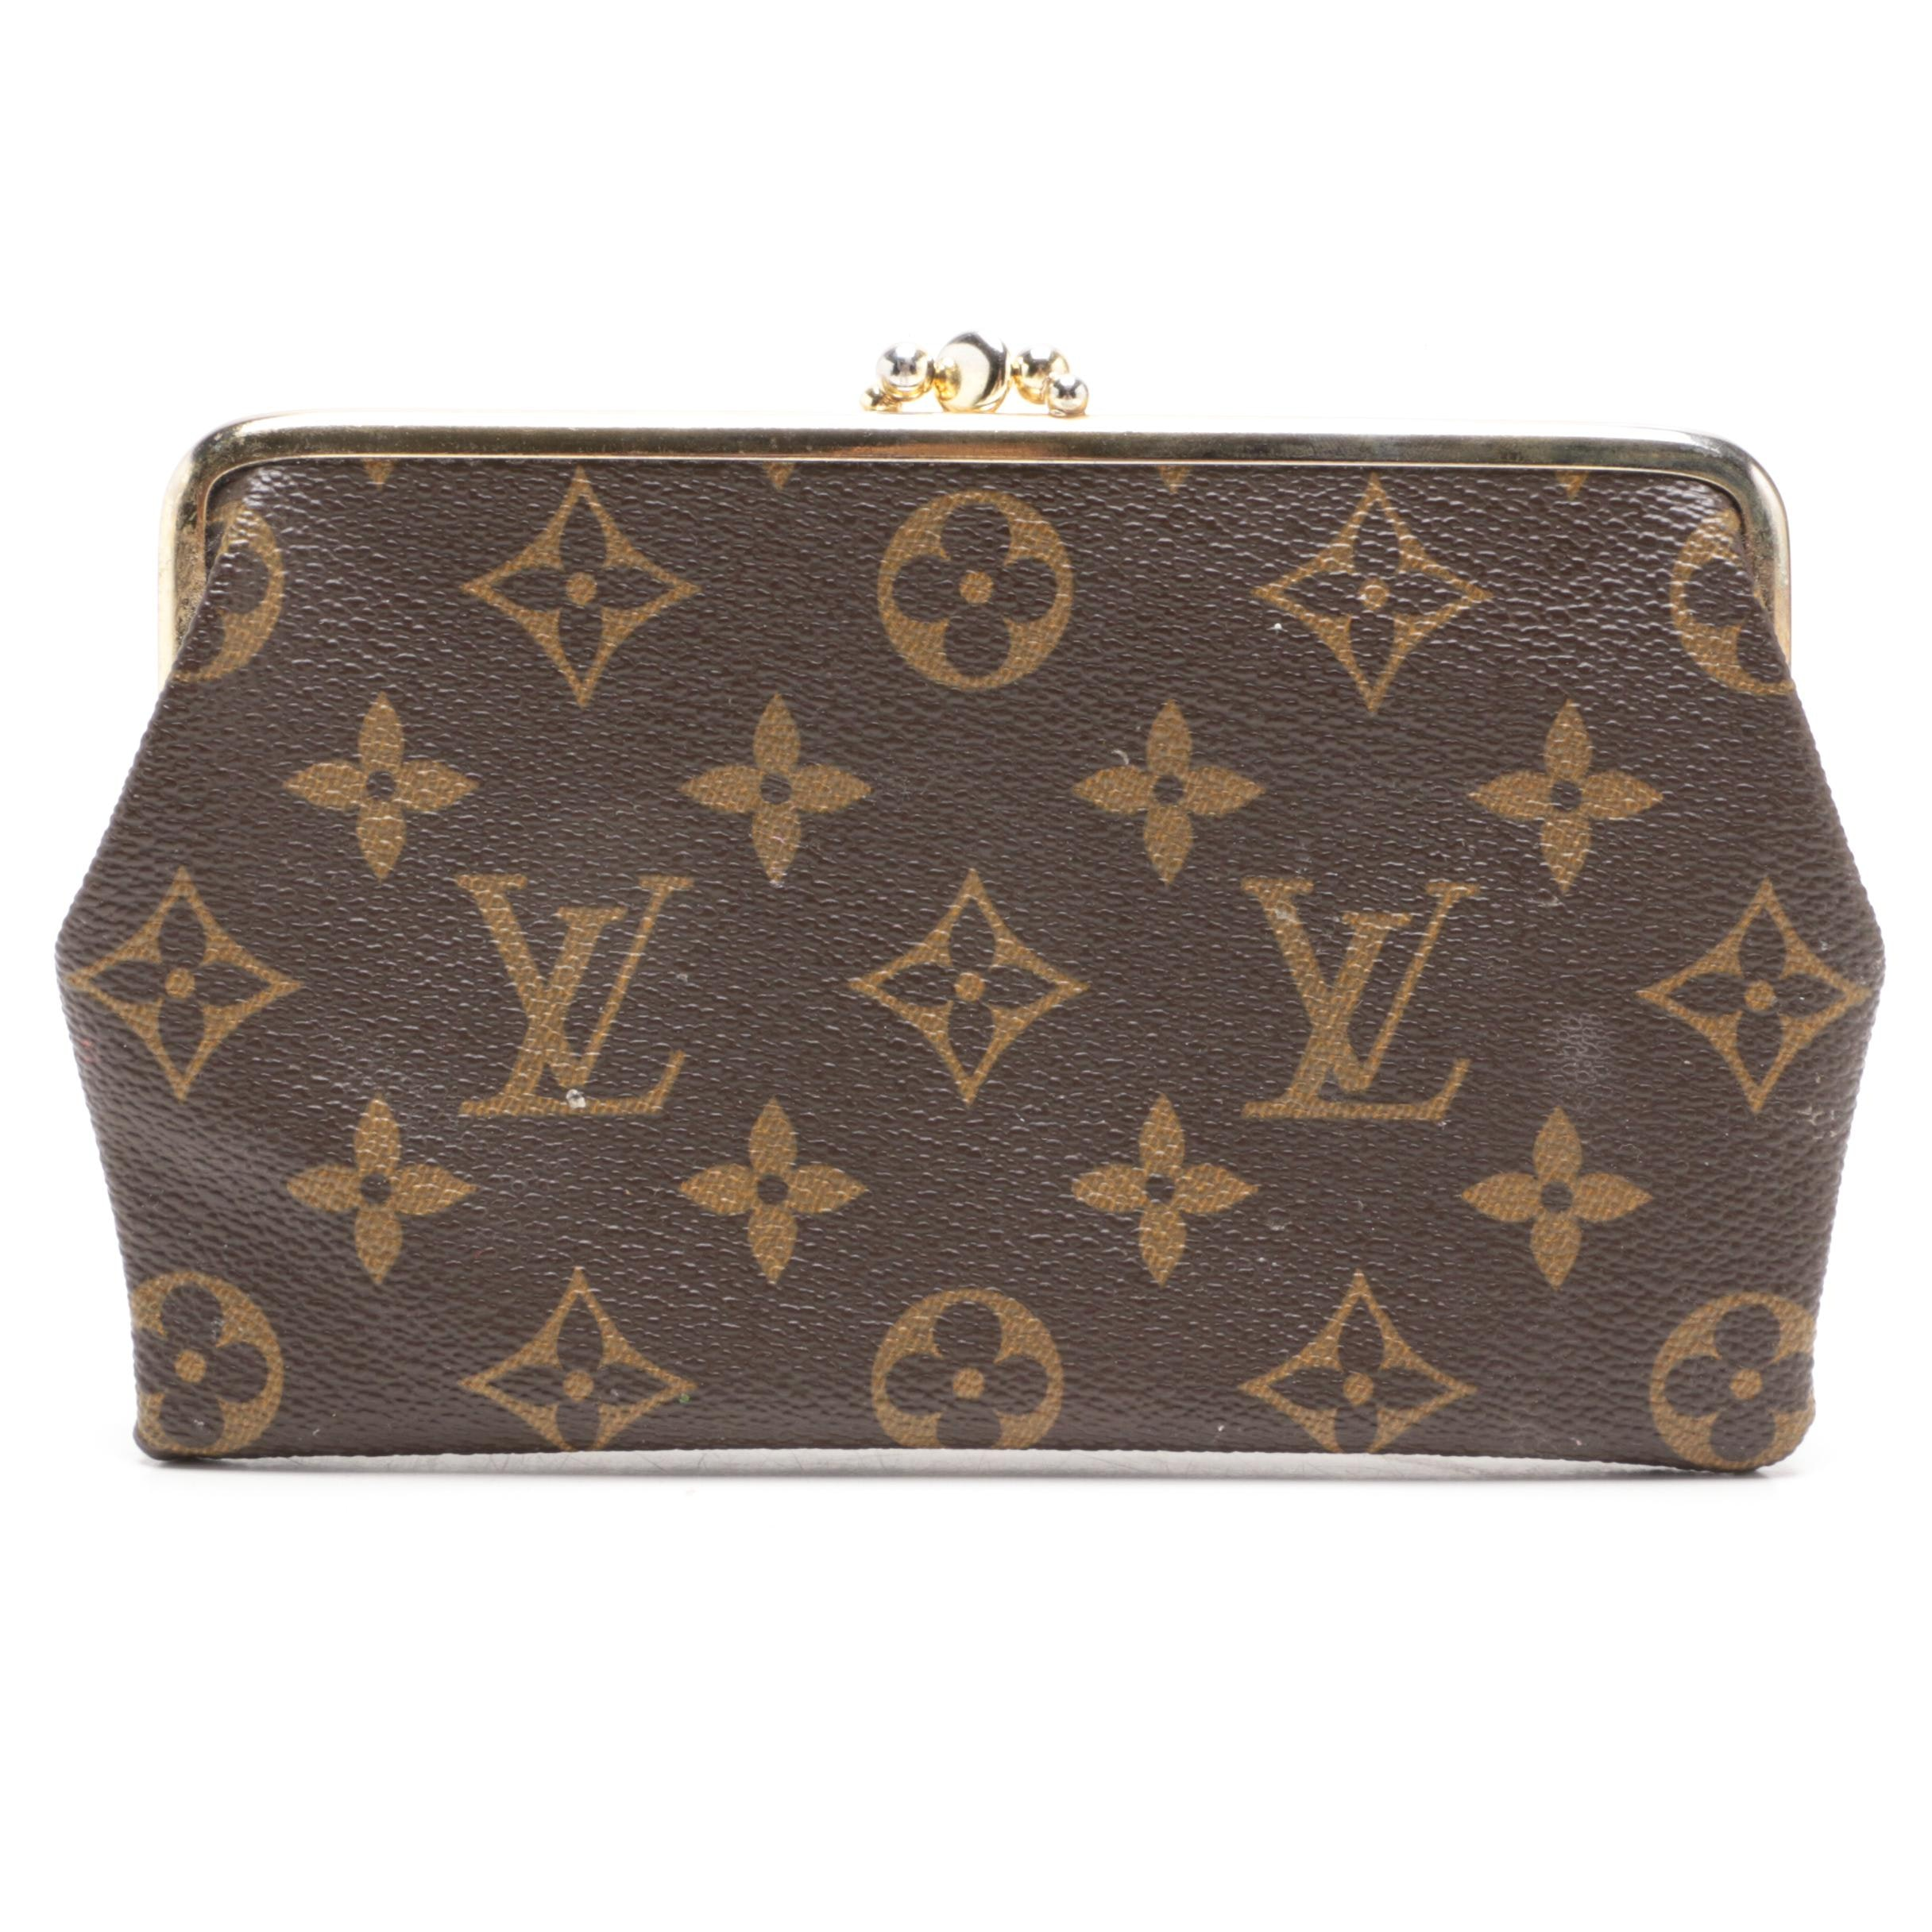 The French Company for Louis Vuitton Monogram Canvas Clutch